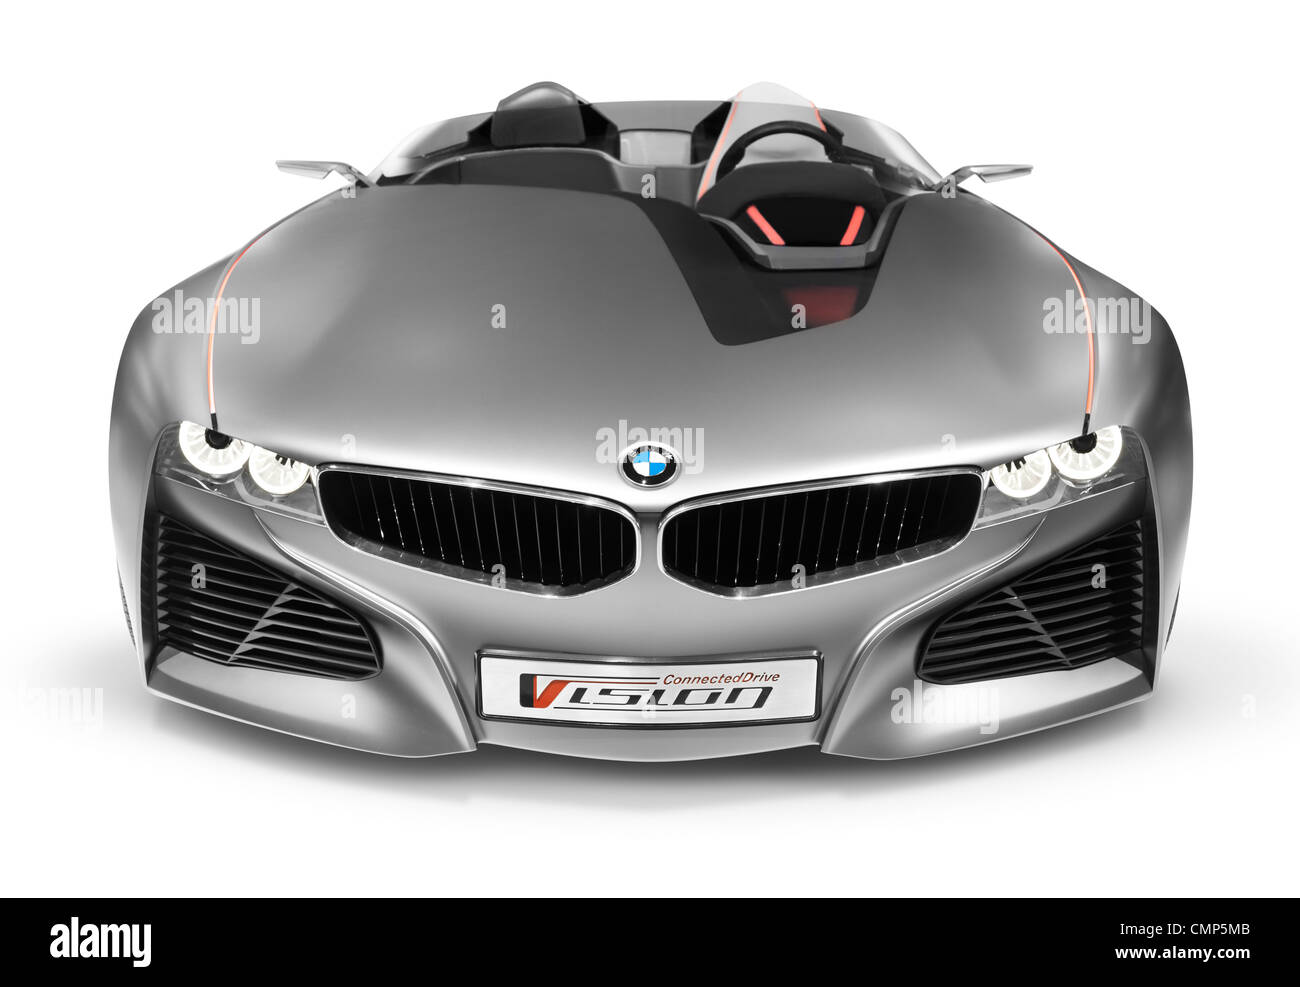 BMW Vision ConnectedDrive Concept Sports Car Front View - Sports cars 2012